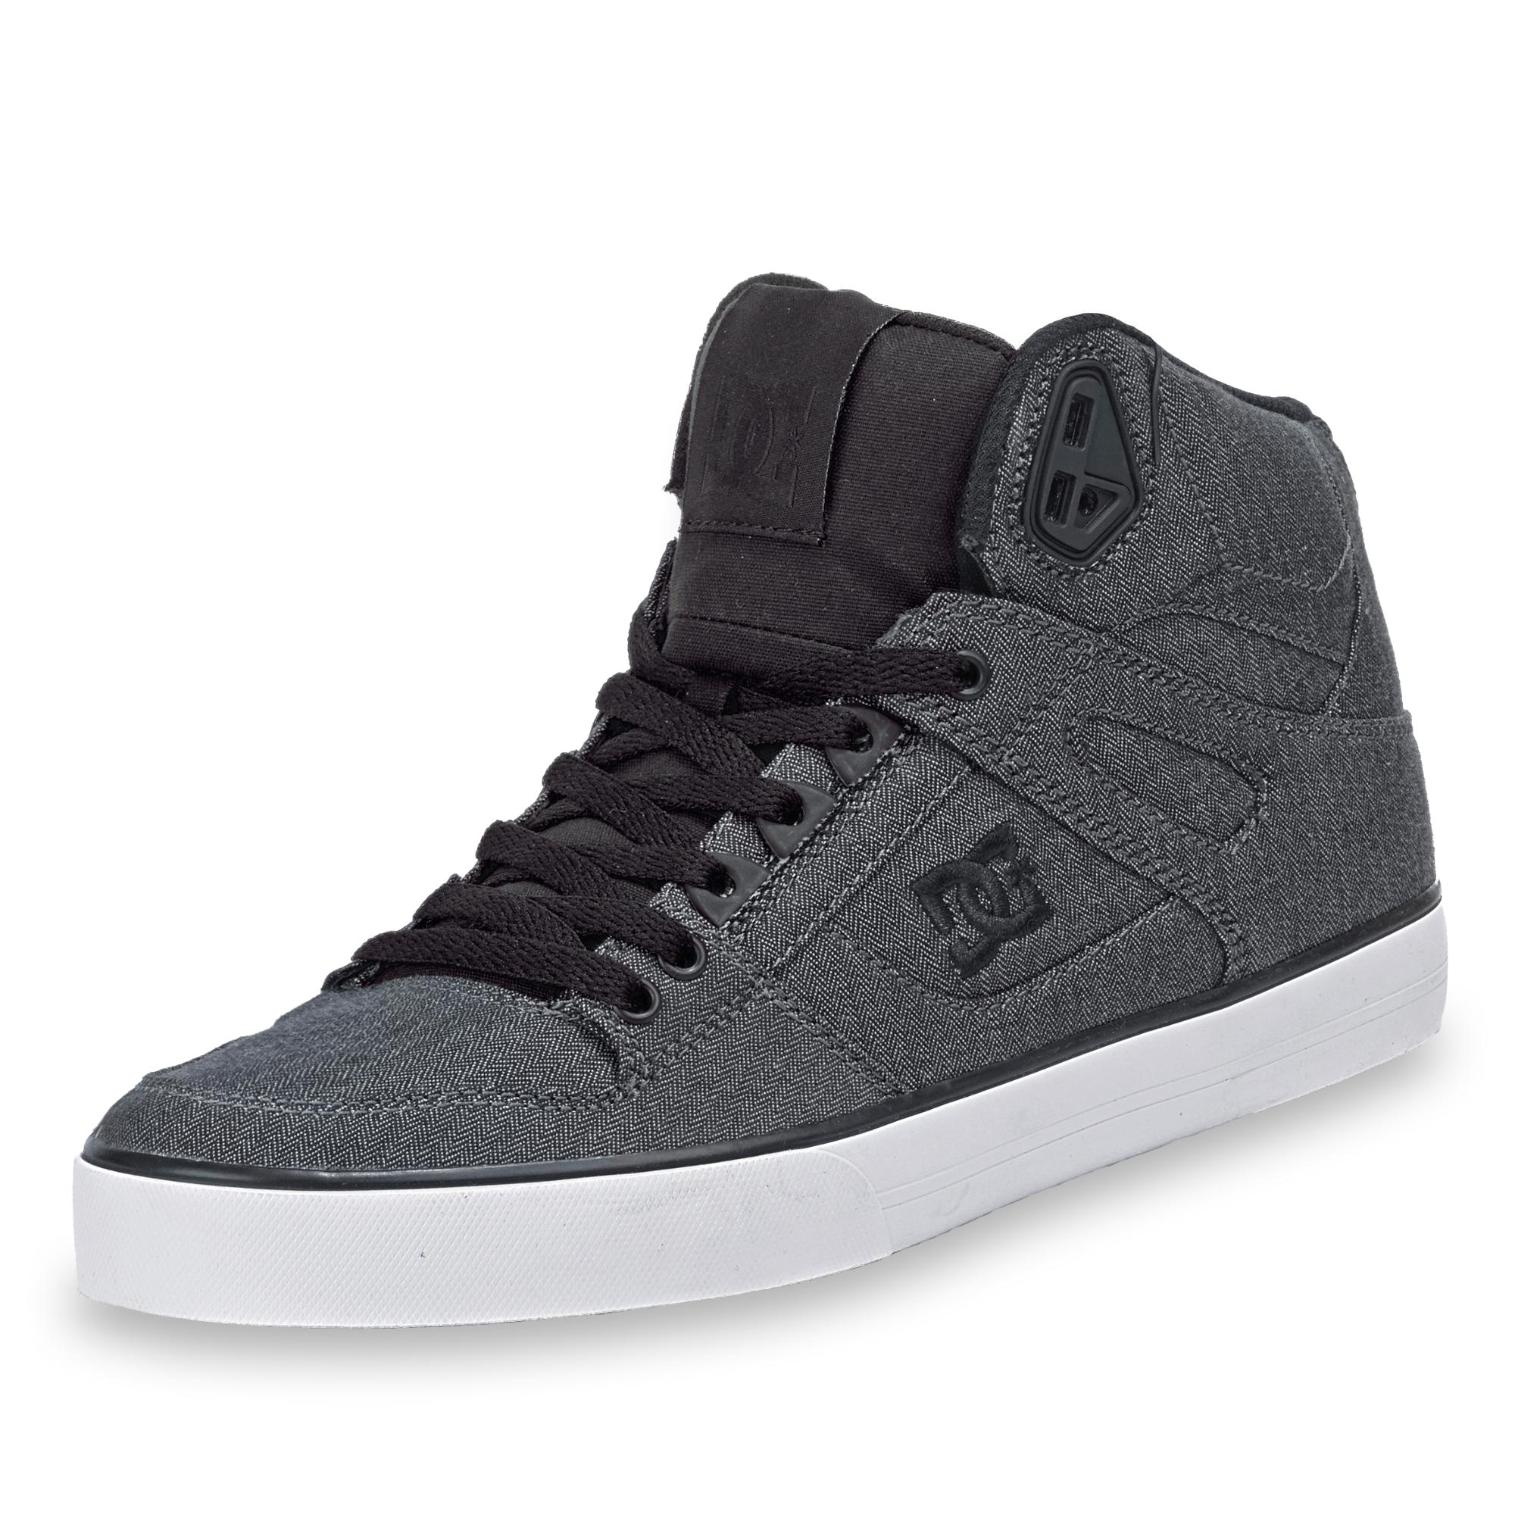 DC Sneakerboots in Farbe Farbe Farbe anthrazit 033811